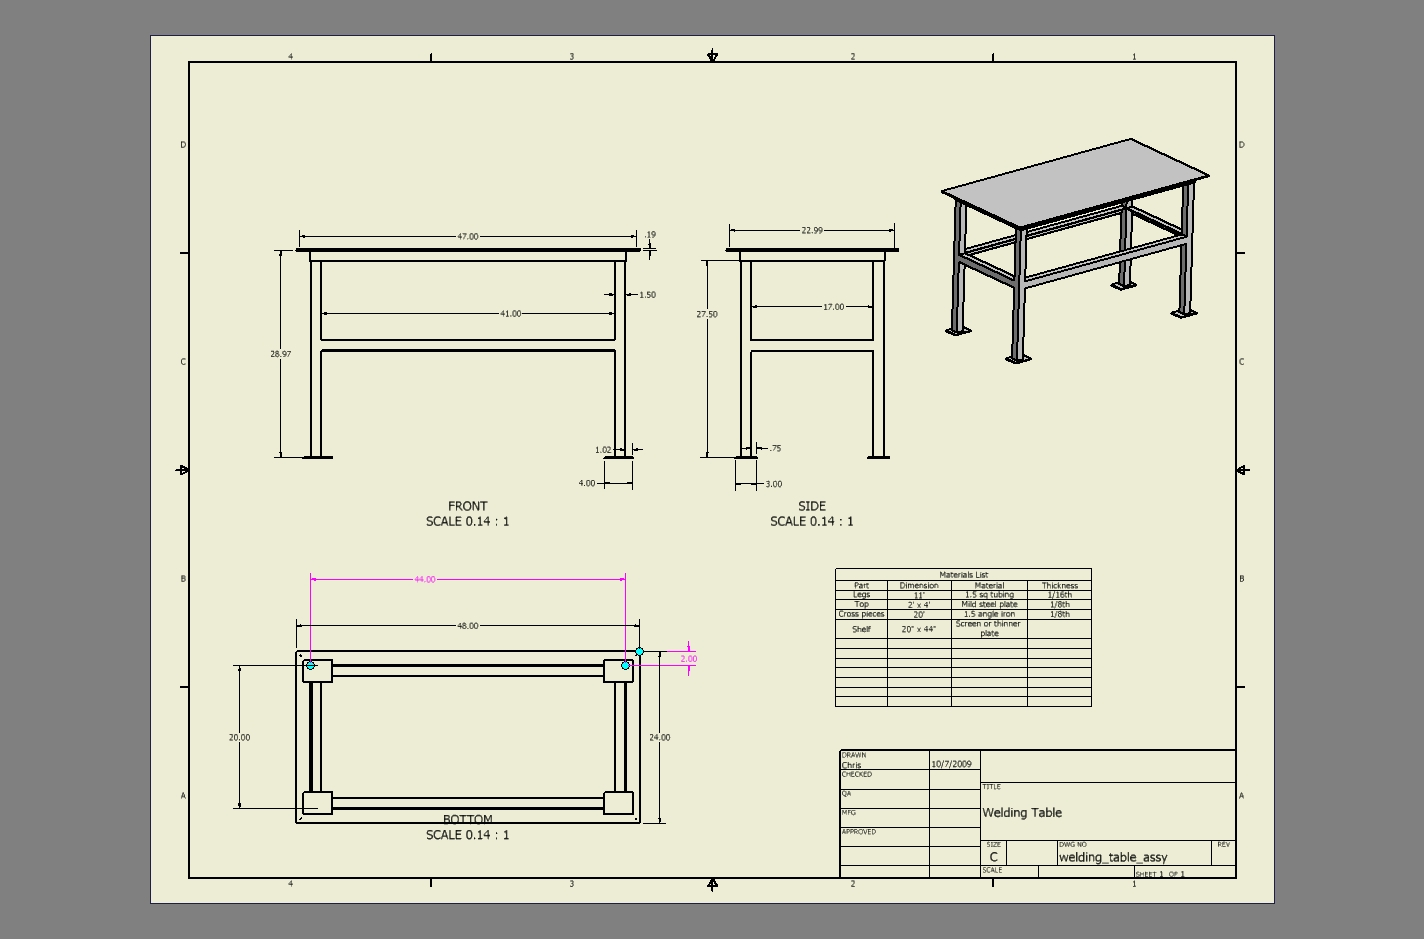 Welding Drawing At Free For Personal Use Cart Diagram 1424x939 My Open Source Projects Table Construction